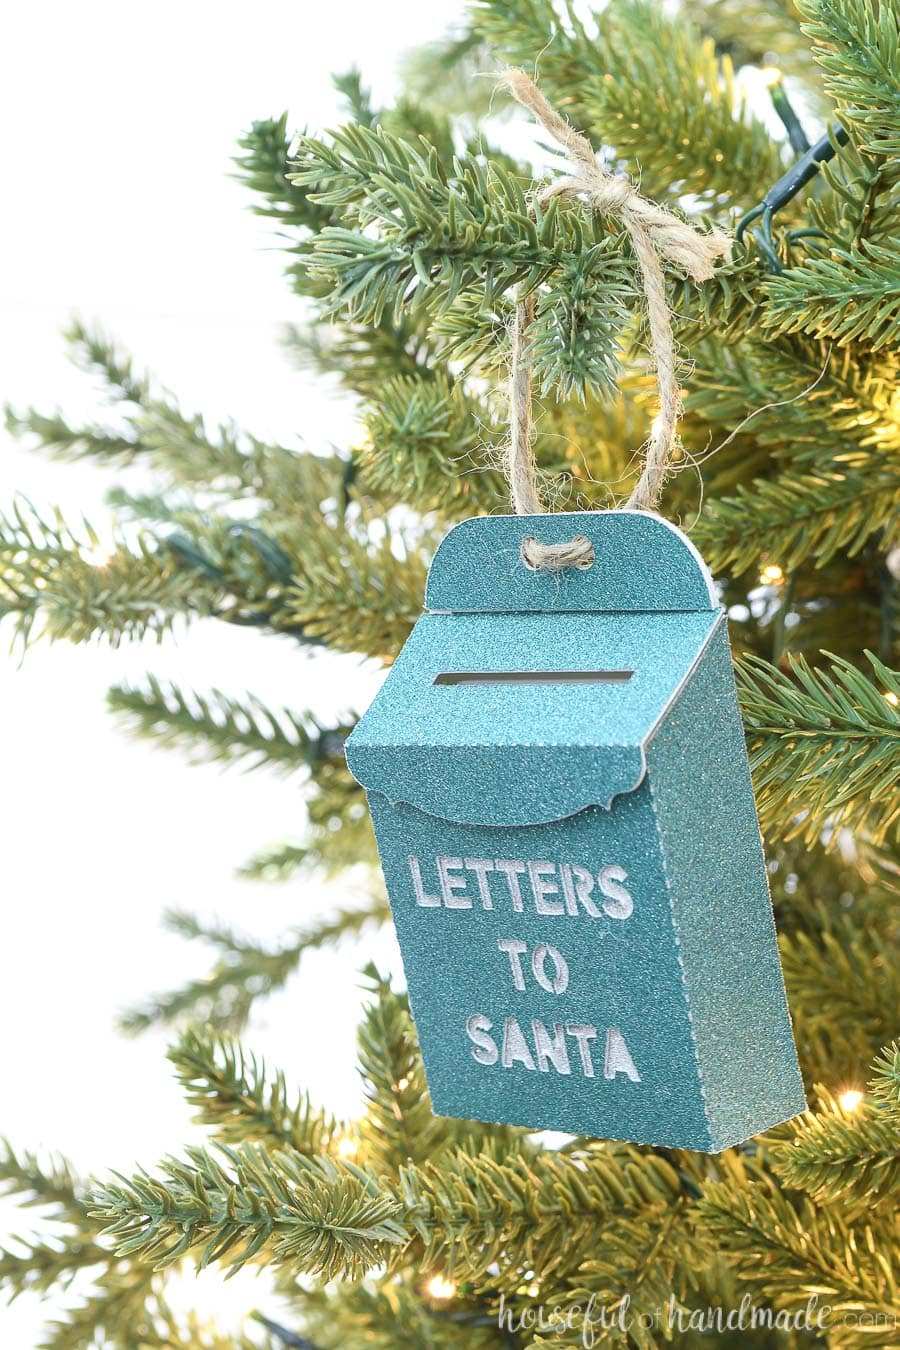 Angled view of the turquoise santa mailbox Christmas ornament hanging on a tree.